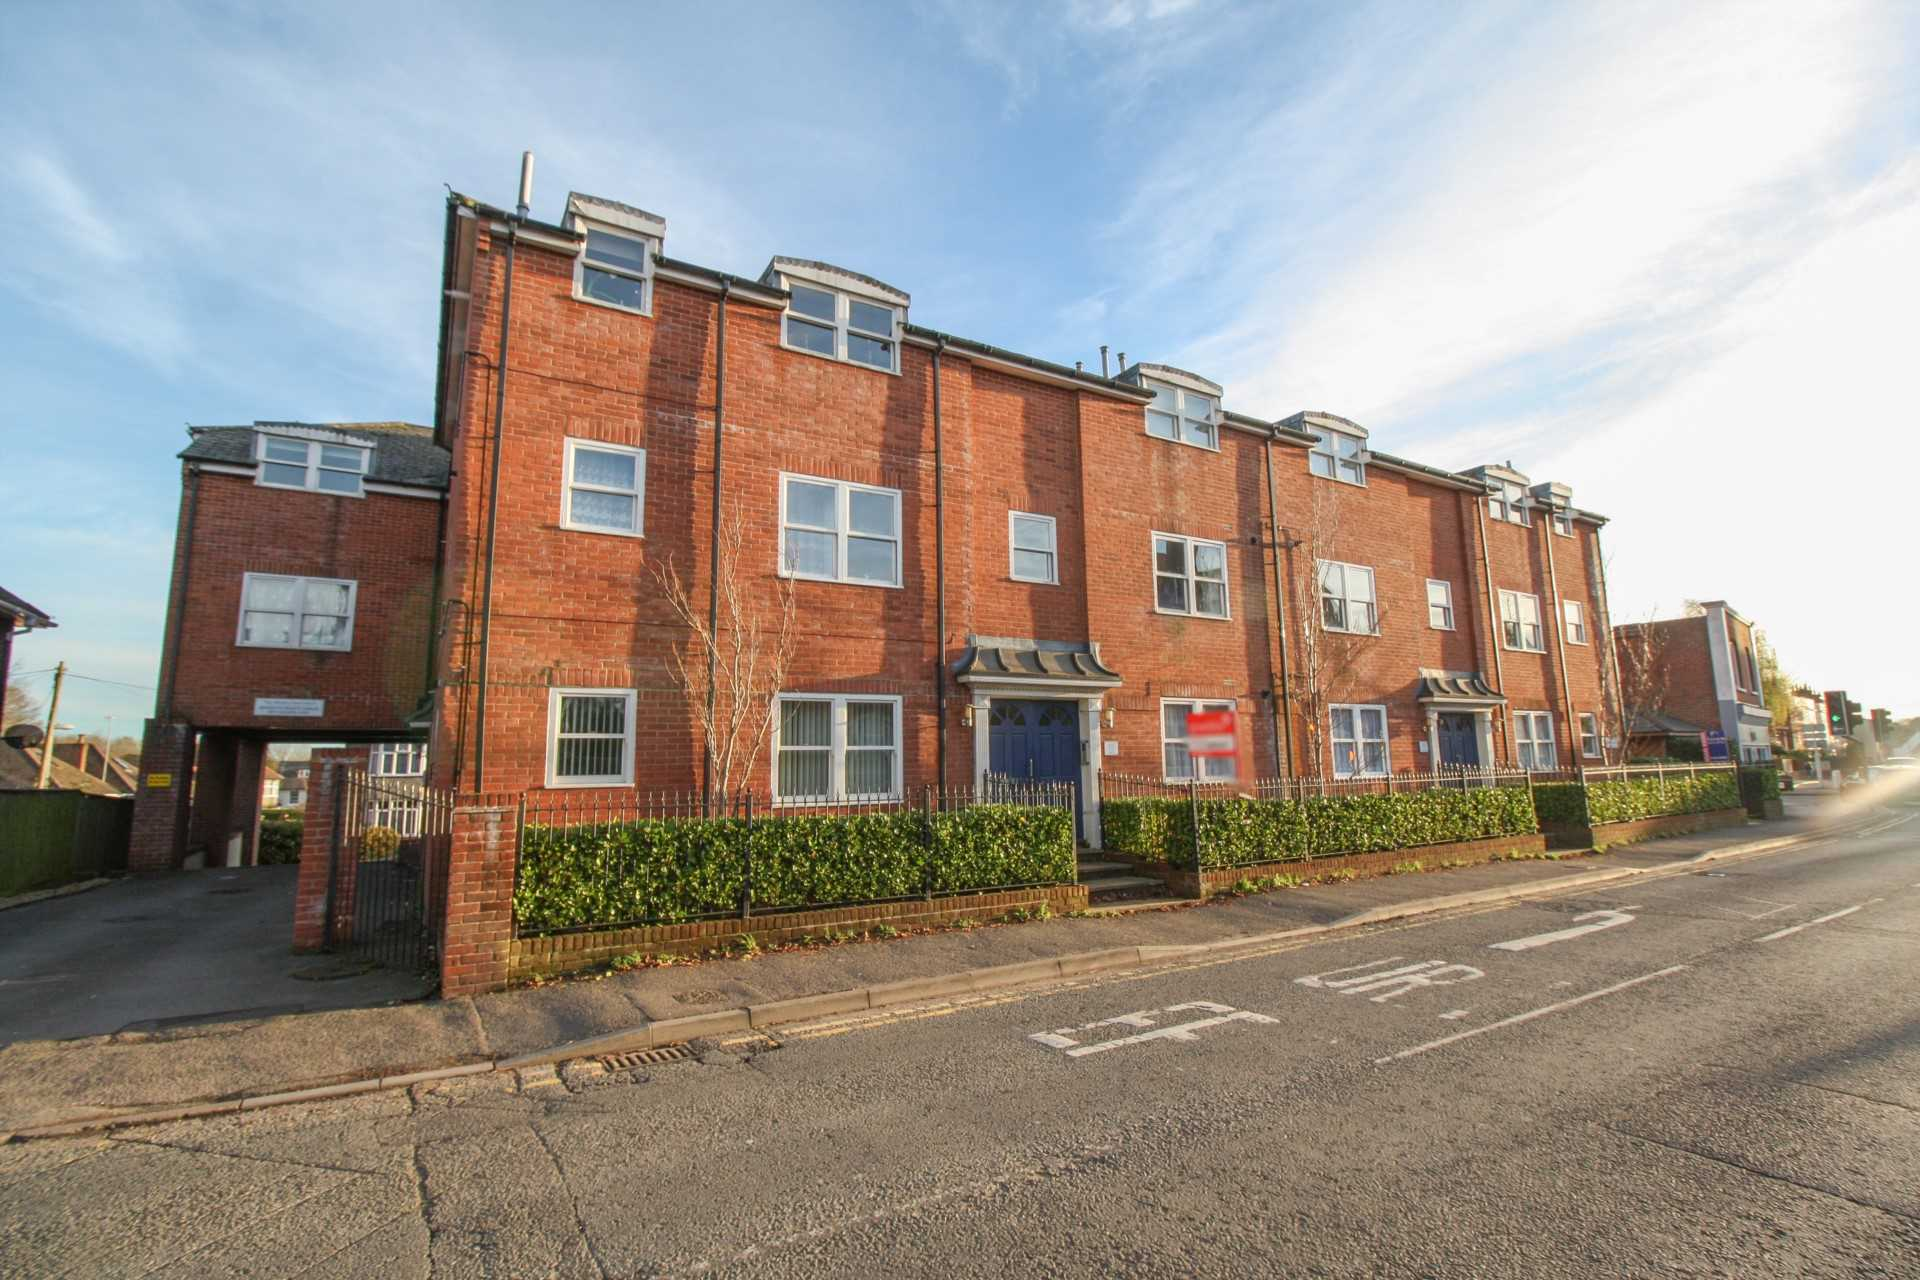 2 bed flat to rent in The Orkneys, Blandford Forum, Blandford Forum 0